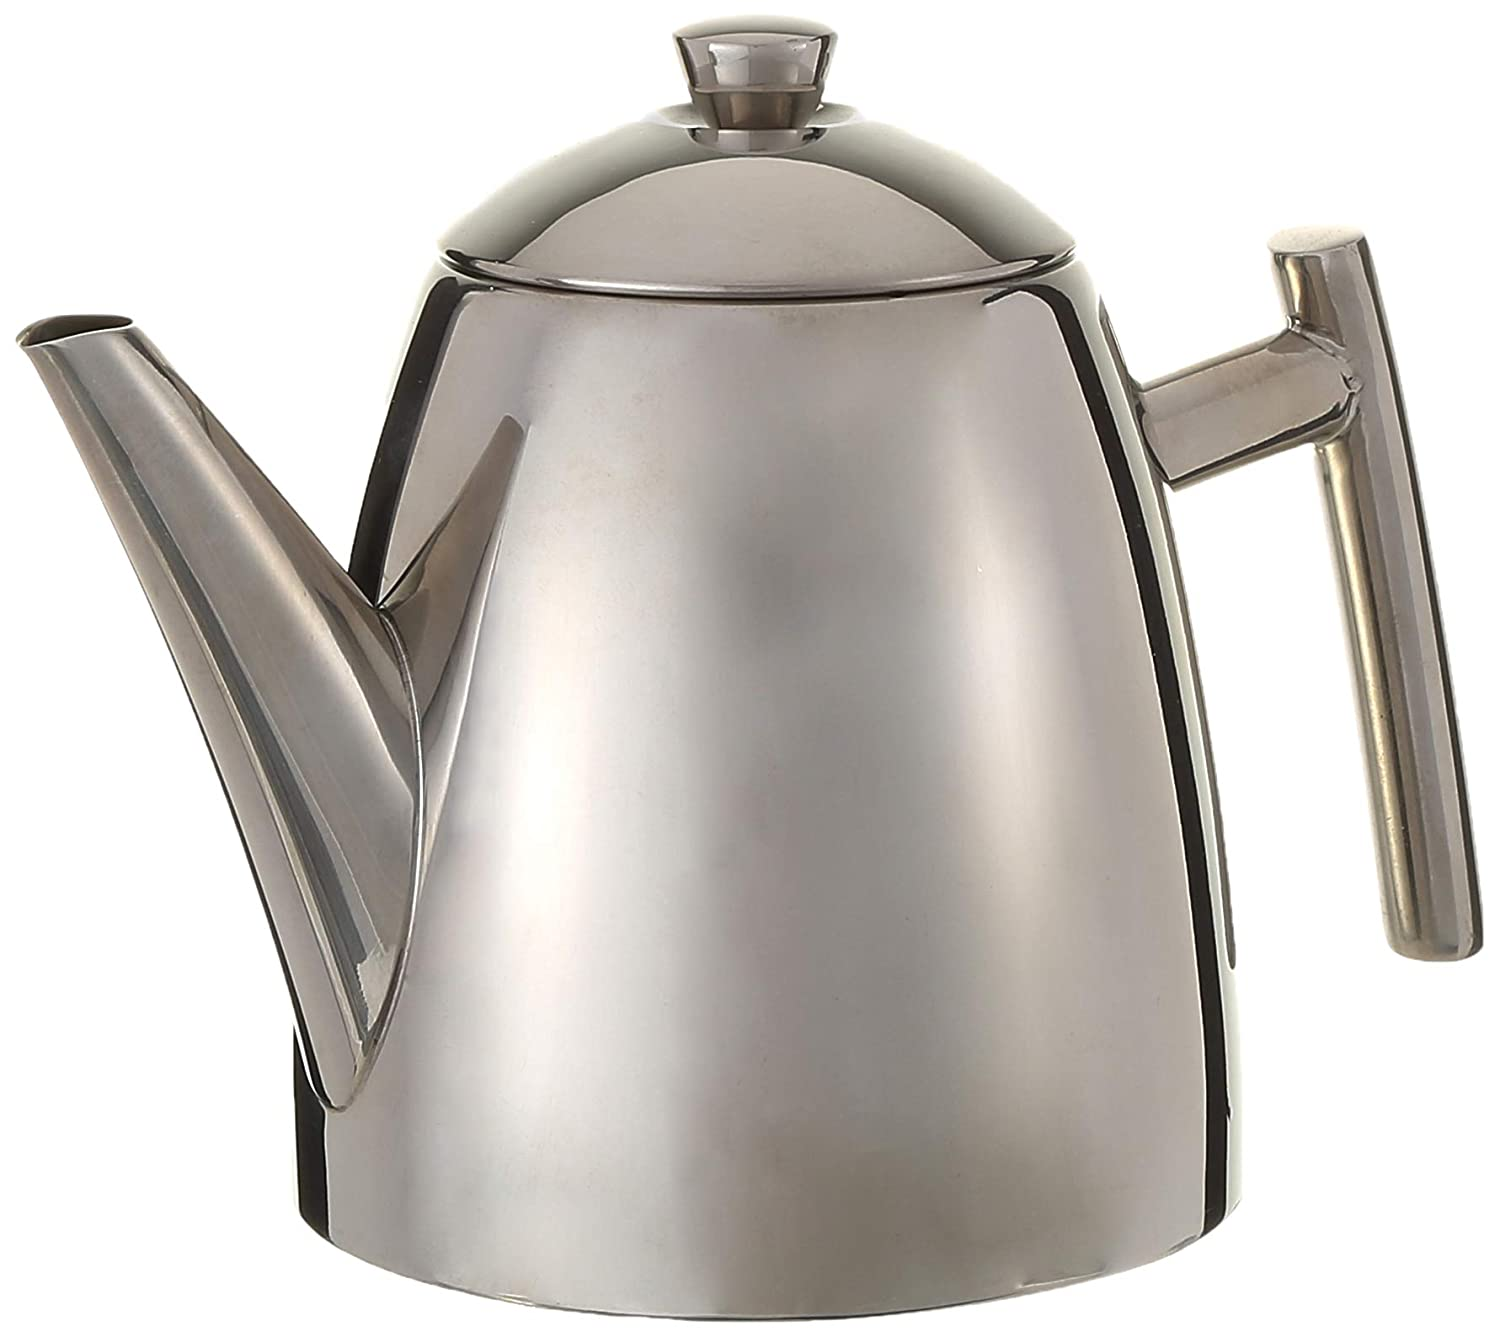 Frieling USA 18/8 Stainless Steel Primo Teapot with Infuser, 34-ounce 122